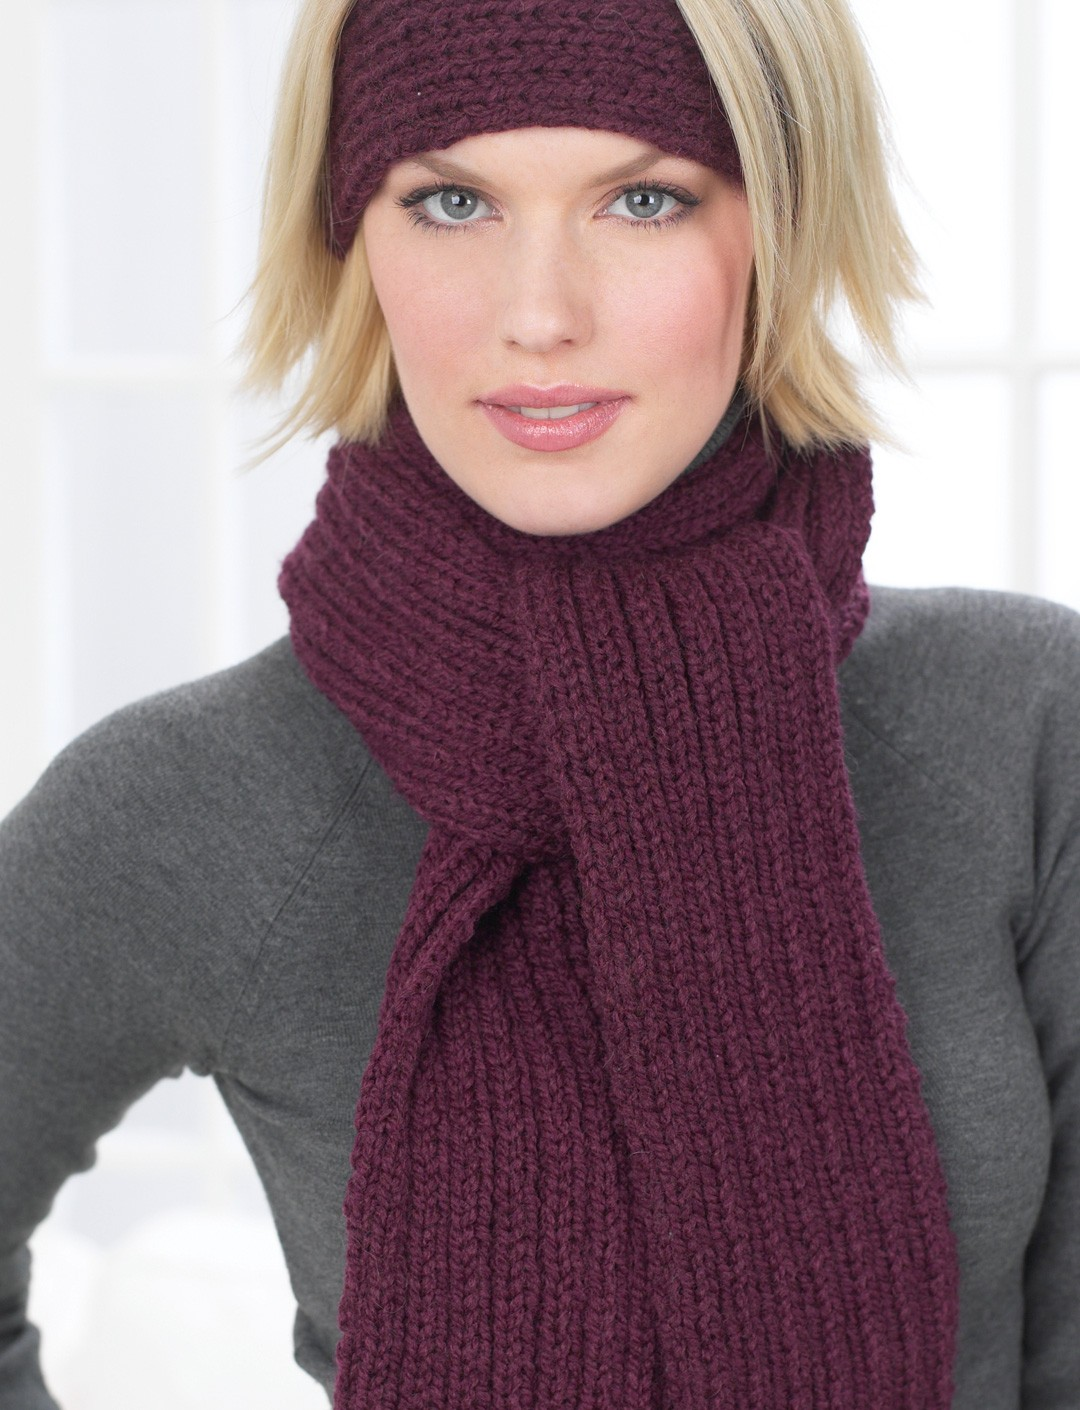 Knitting Pattern Ribbed Headband : Ribbed Headband and Scarf - Patterns Yarnspirations